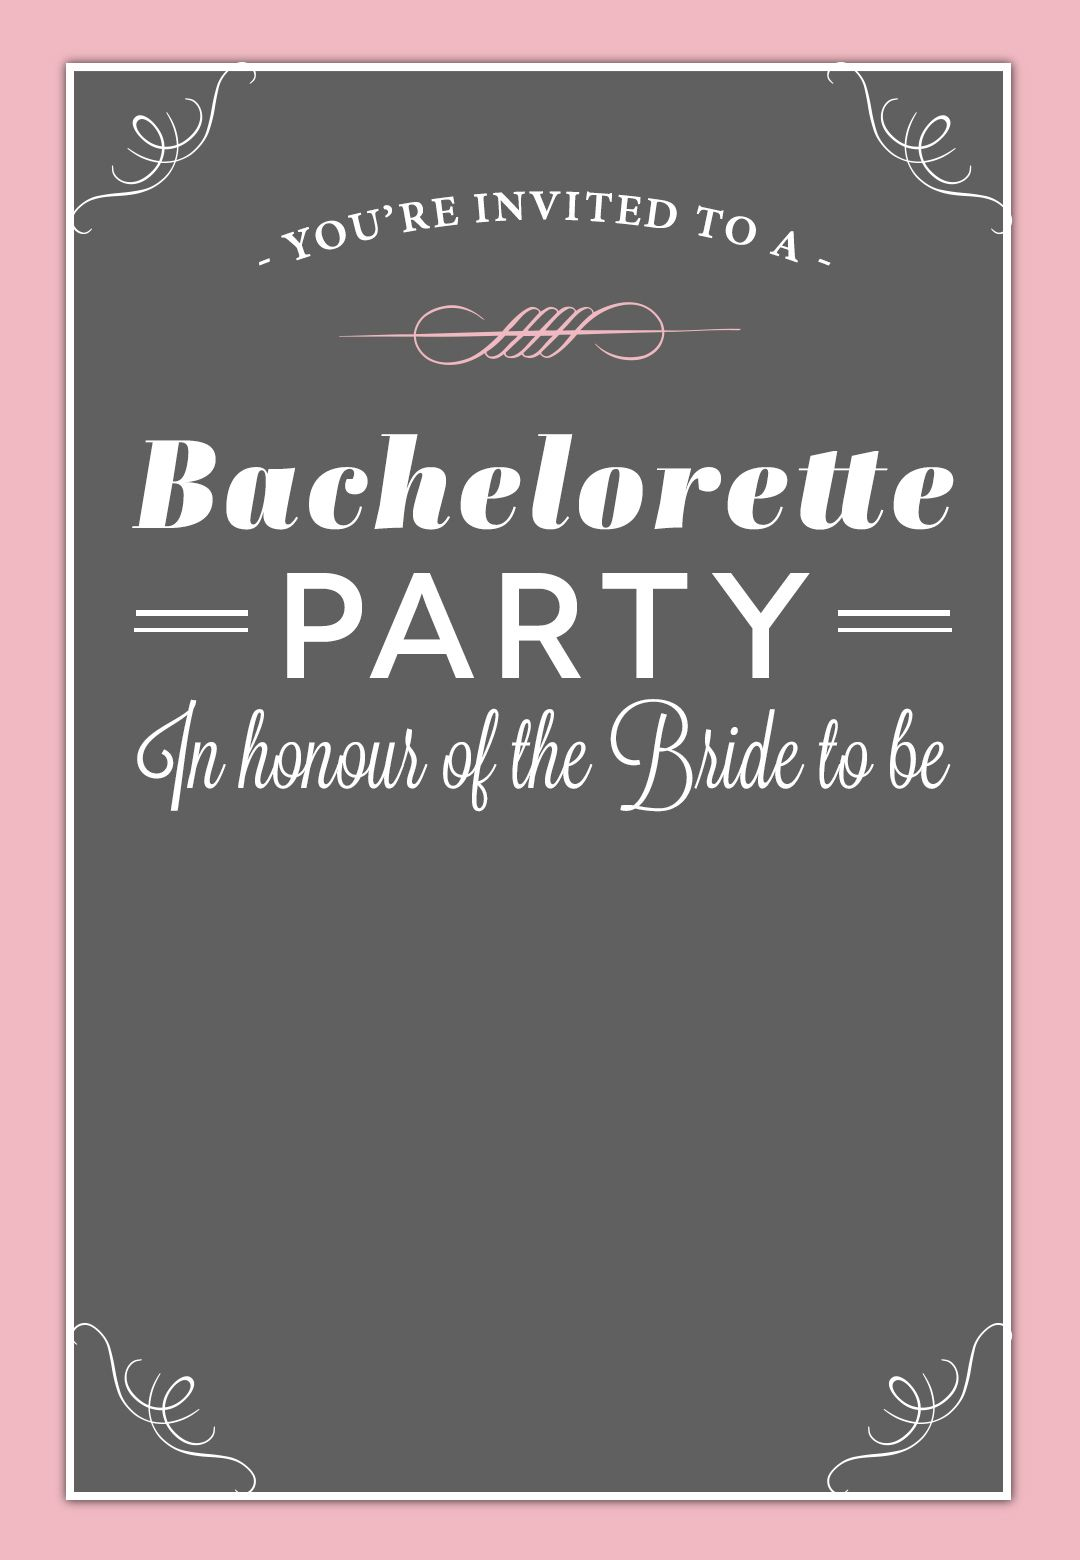 Bachelorette Party #invitation - Free Printable | Free Bachelorette - Free Printable Event Invitations